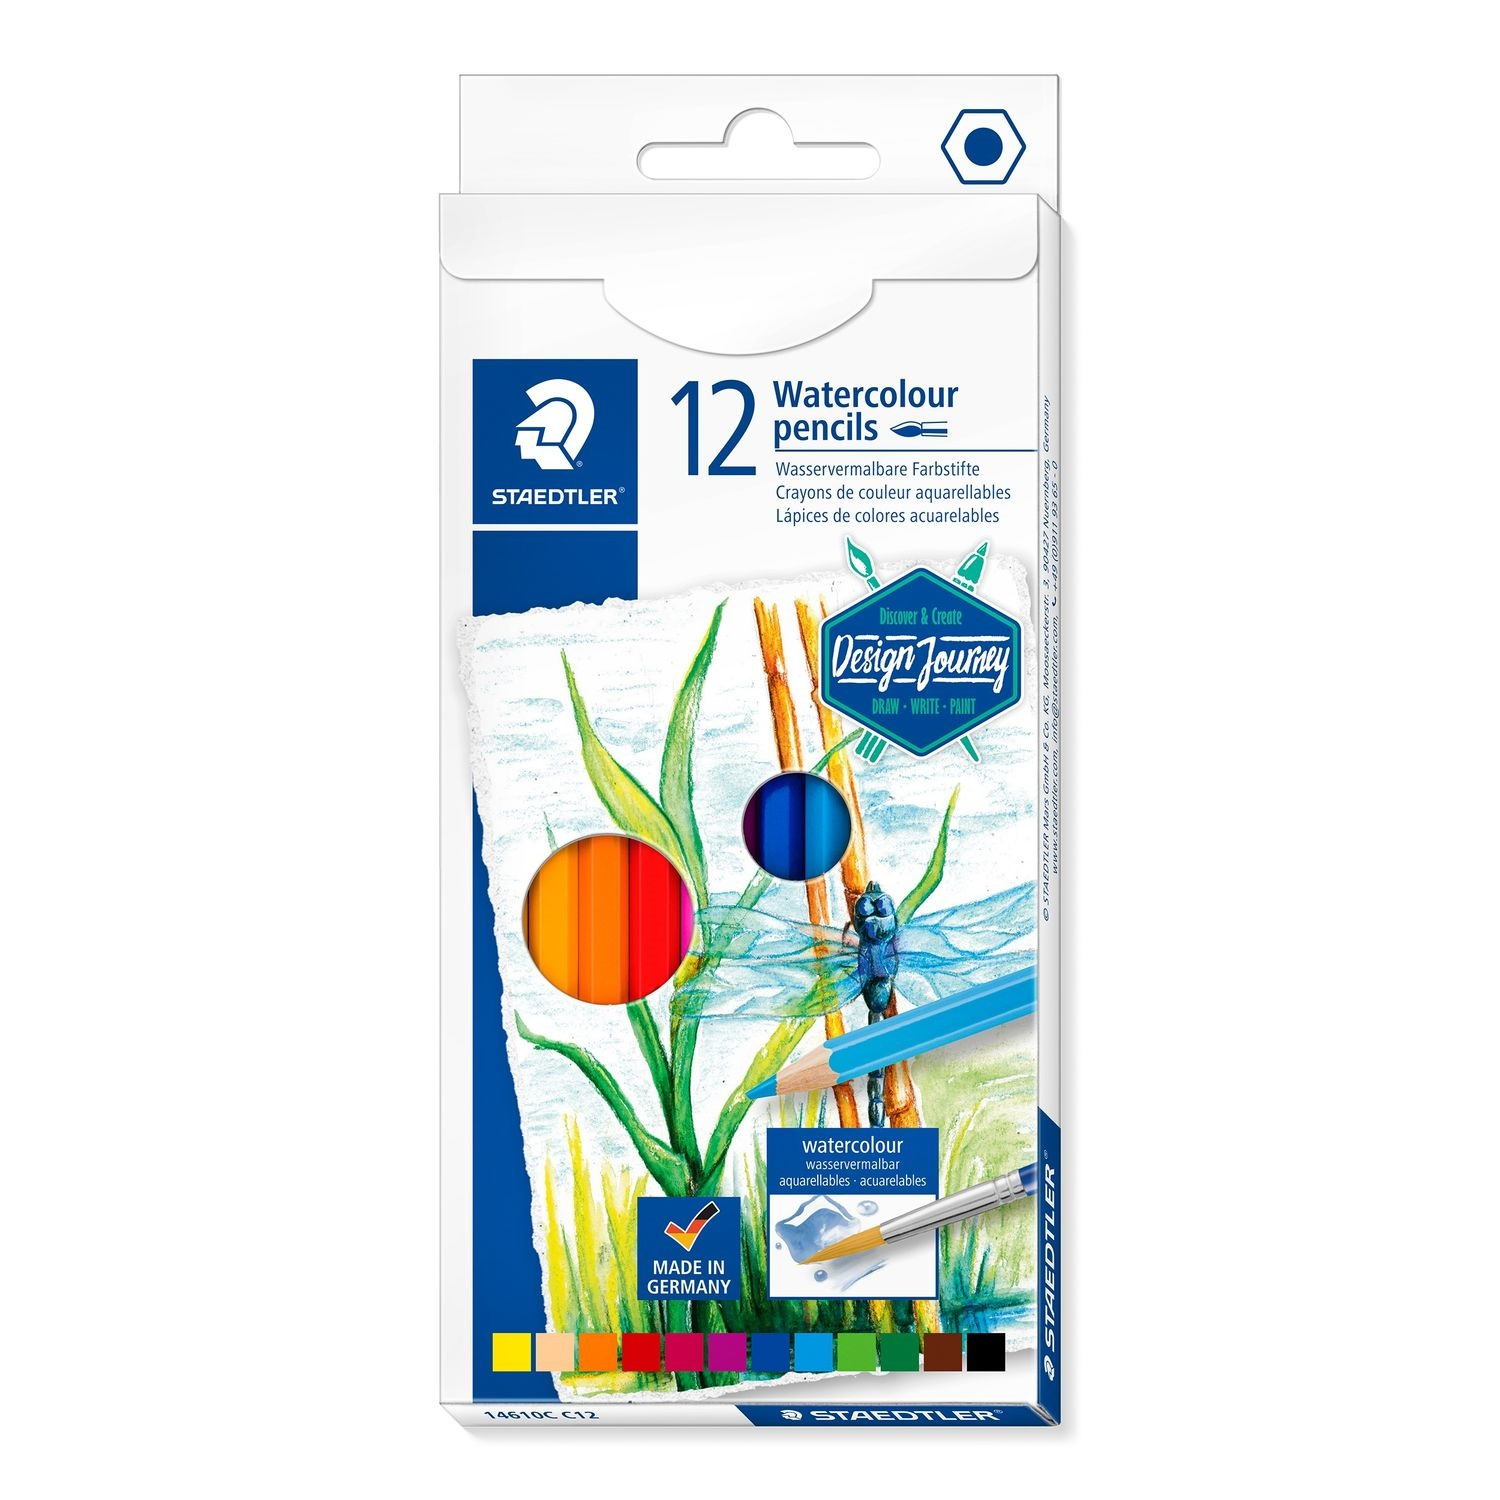 Image For WATERCOLOR PENCIL 12PK: STAEDTLER